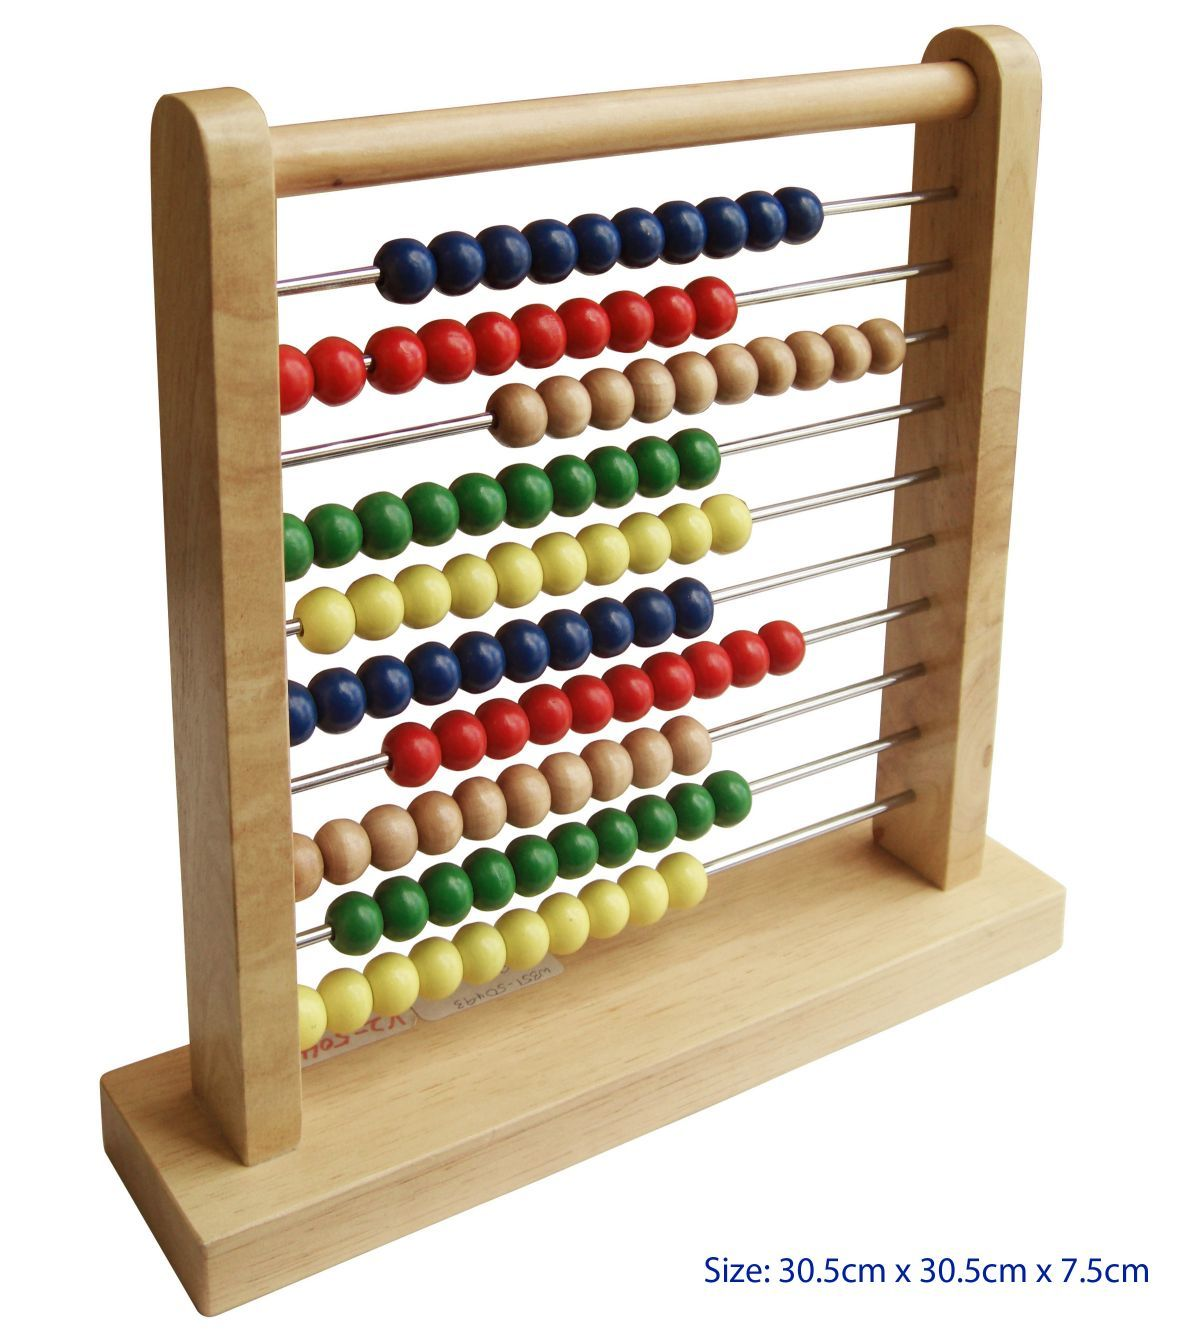 CLASSIC ABACUS with Metal Bars Educational Wooden TOY